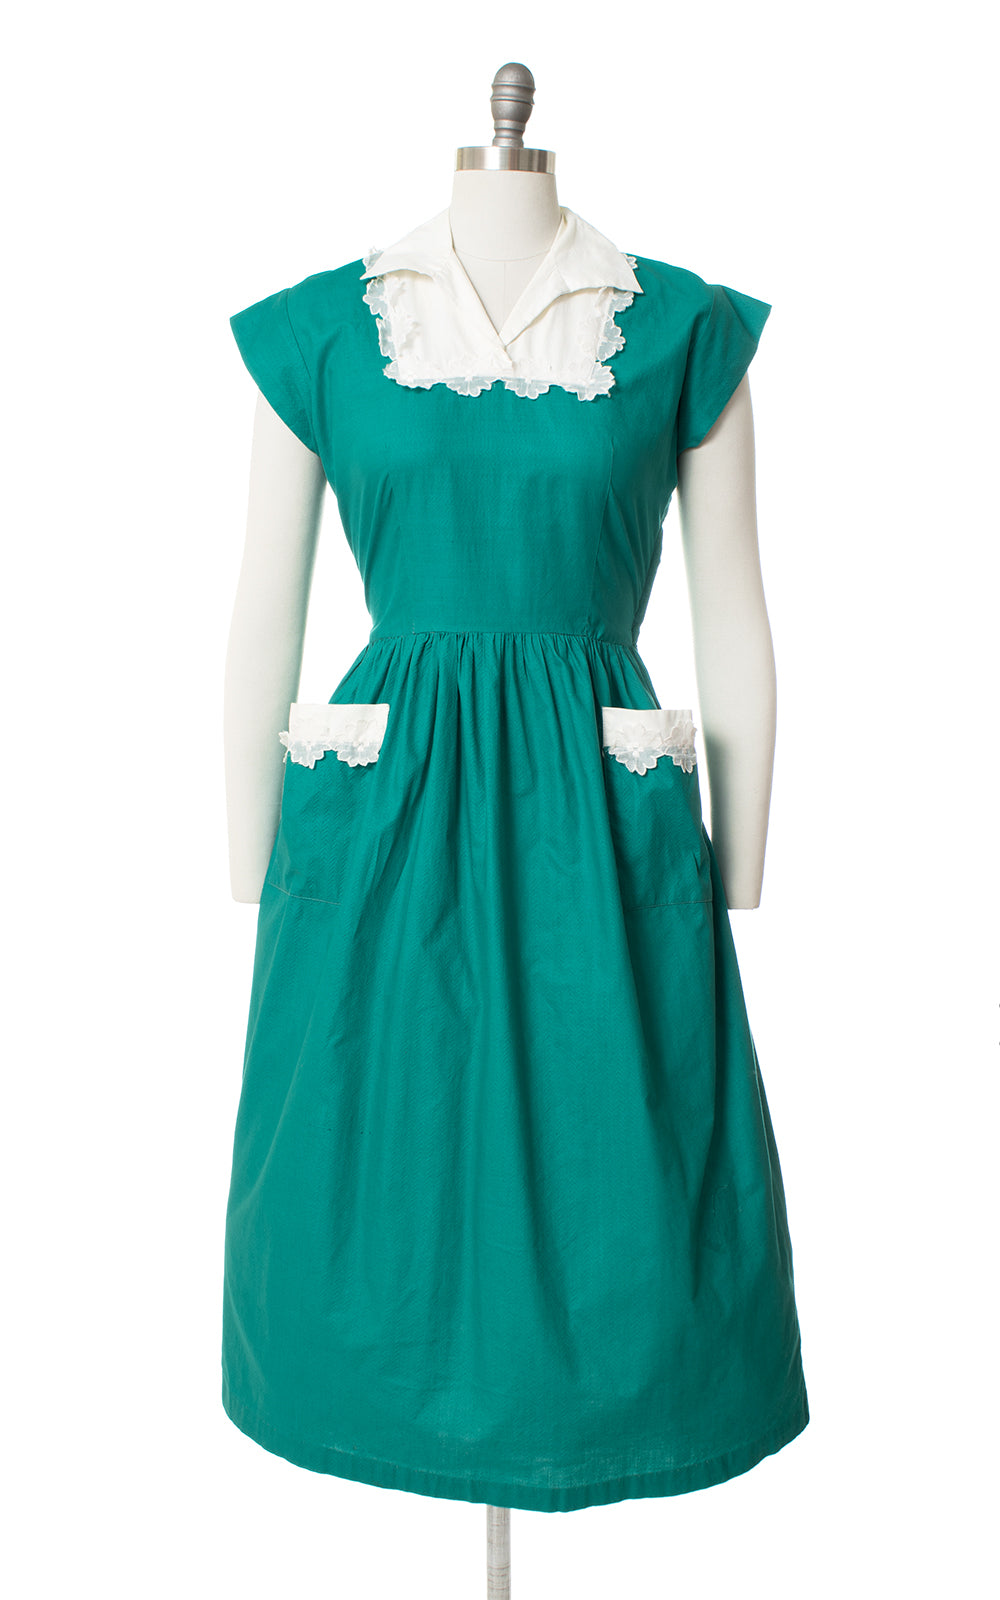 1940s Green Cotton Floral Appliqué Day Dress with Pockets